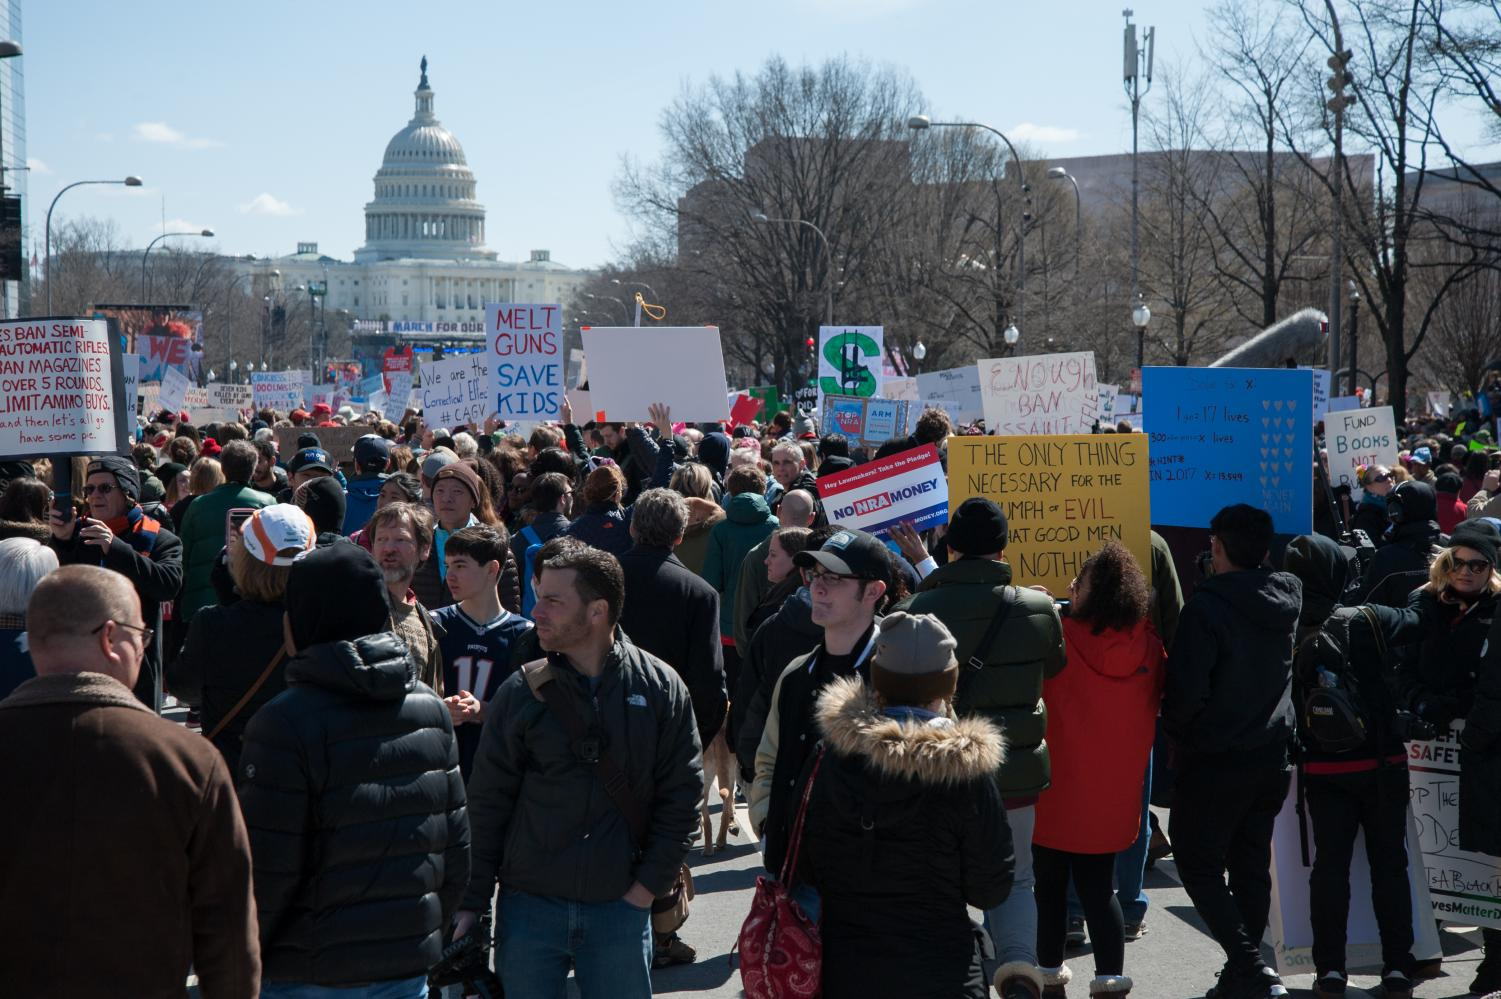 Protesters take to D.C. to protest gun violence and call for gun control laws. The March took place on Mar. 24. Photo courtesy of Wikimedia Commons